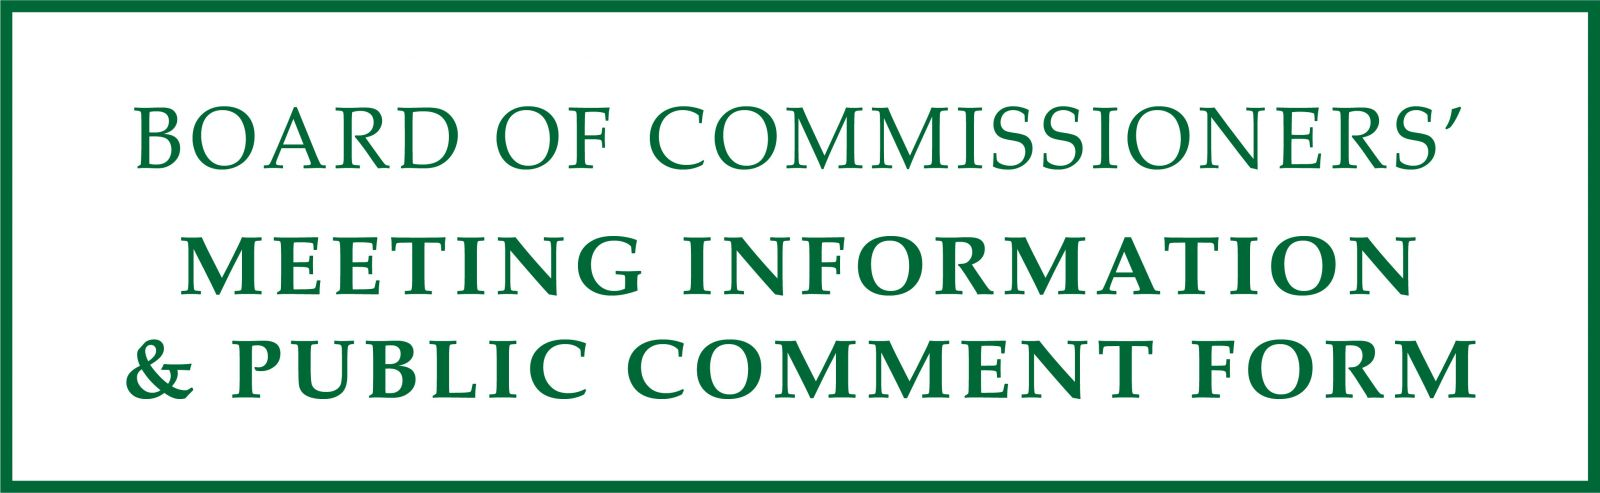 Board of Commissioners' Meeting information and public comment form